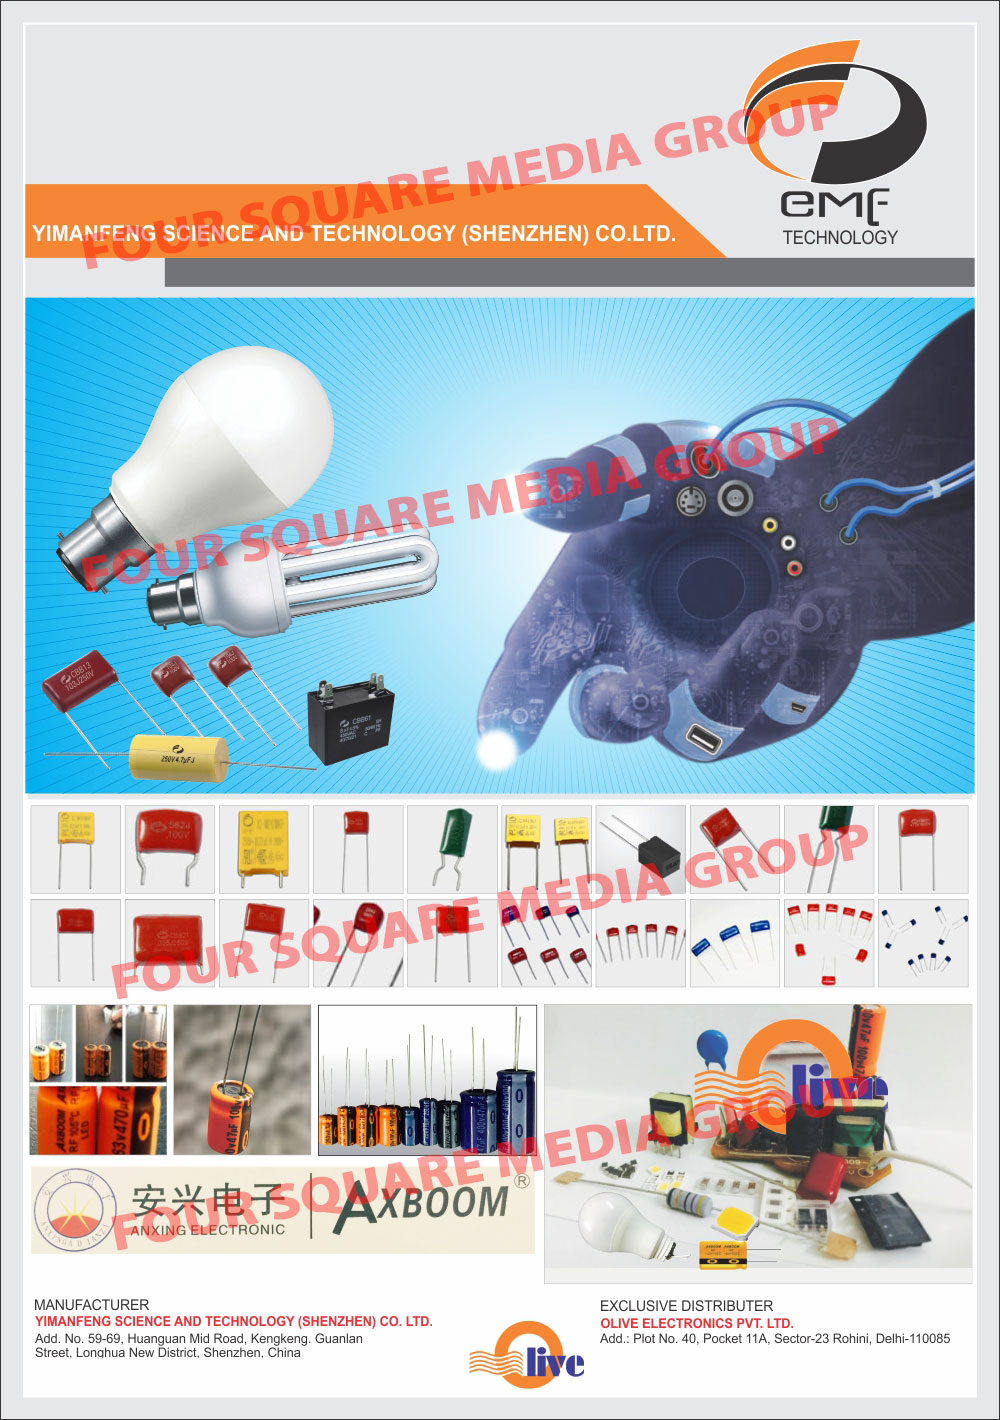 Electrolytic Capacitors, Radial Type Capacitors, Snap In Type Capacitors, Screw Type Capacitors, Smd Type Capacitors, Epcos Capacitors, LED Lighting Capacitors, Lighting Electronic Components, Aluminum Electrolytic Capacitors, Radial Type Capacitor for Inverters, LED Drivers, Ac Power Capacitors, LED Bulb Housings, LED Chip for LED Bulbs